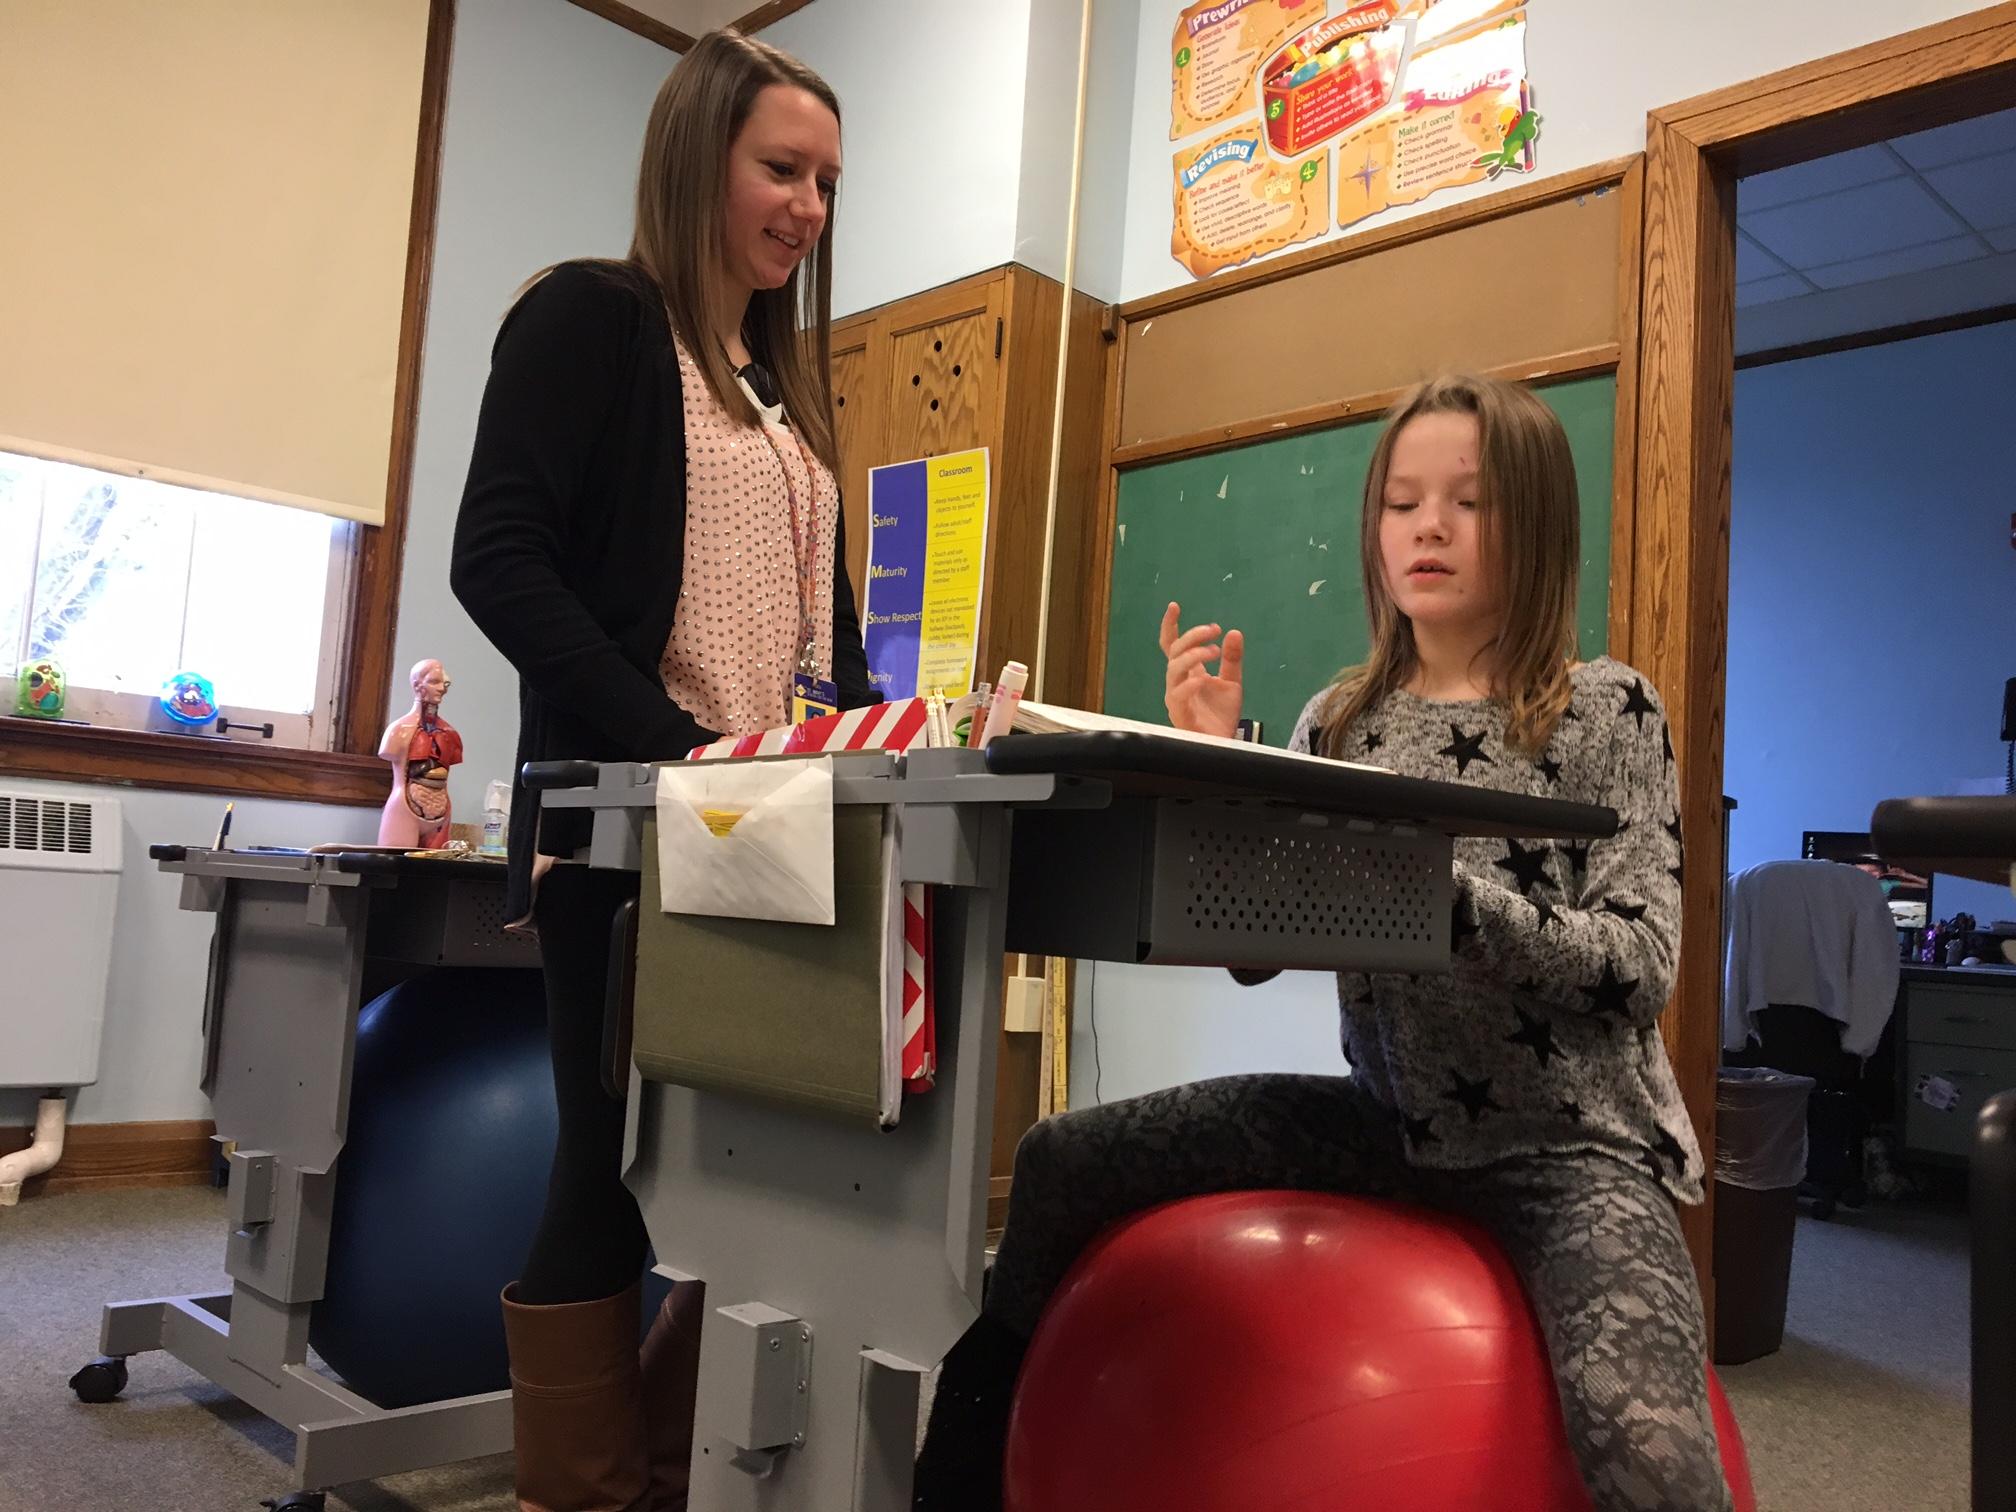 St. Mary's School for the Deaf elementary teacher Sarah Niesyty and one of her students, Zarielle Ormsby, 8, a third-grader, like the Marvel Group adjustable stand up desks put into Niesyty's classroom at the start of the school year. (Photos by Scott Scanlon)